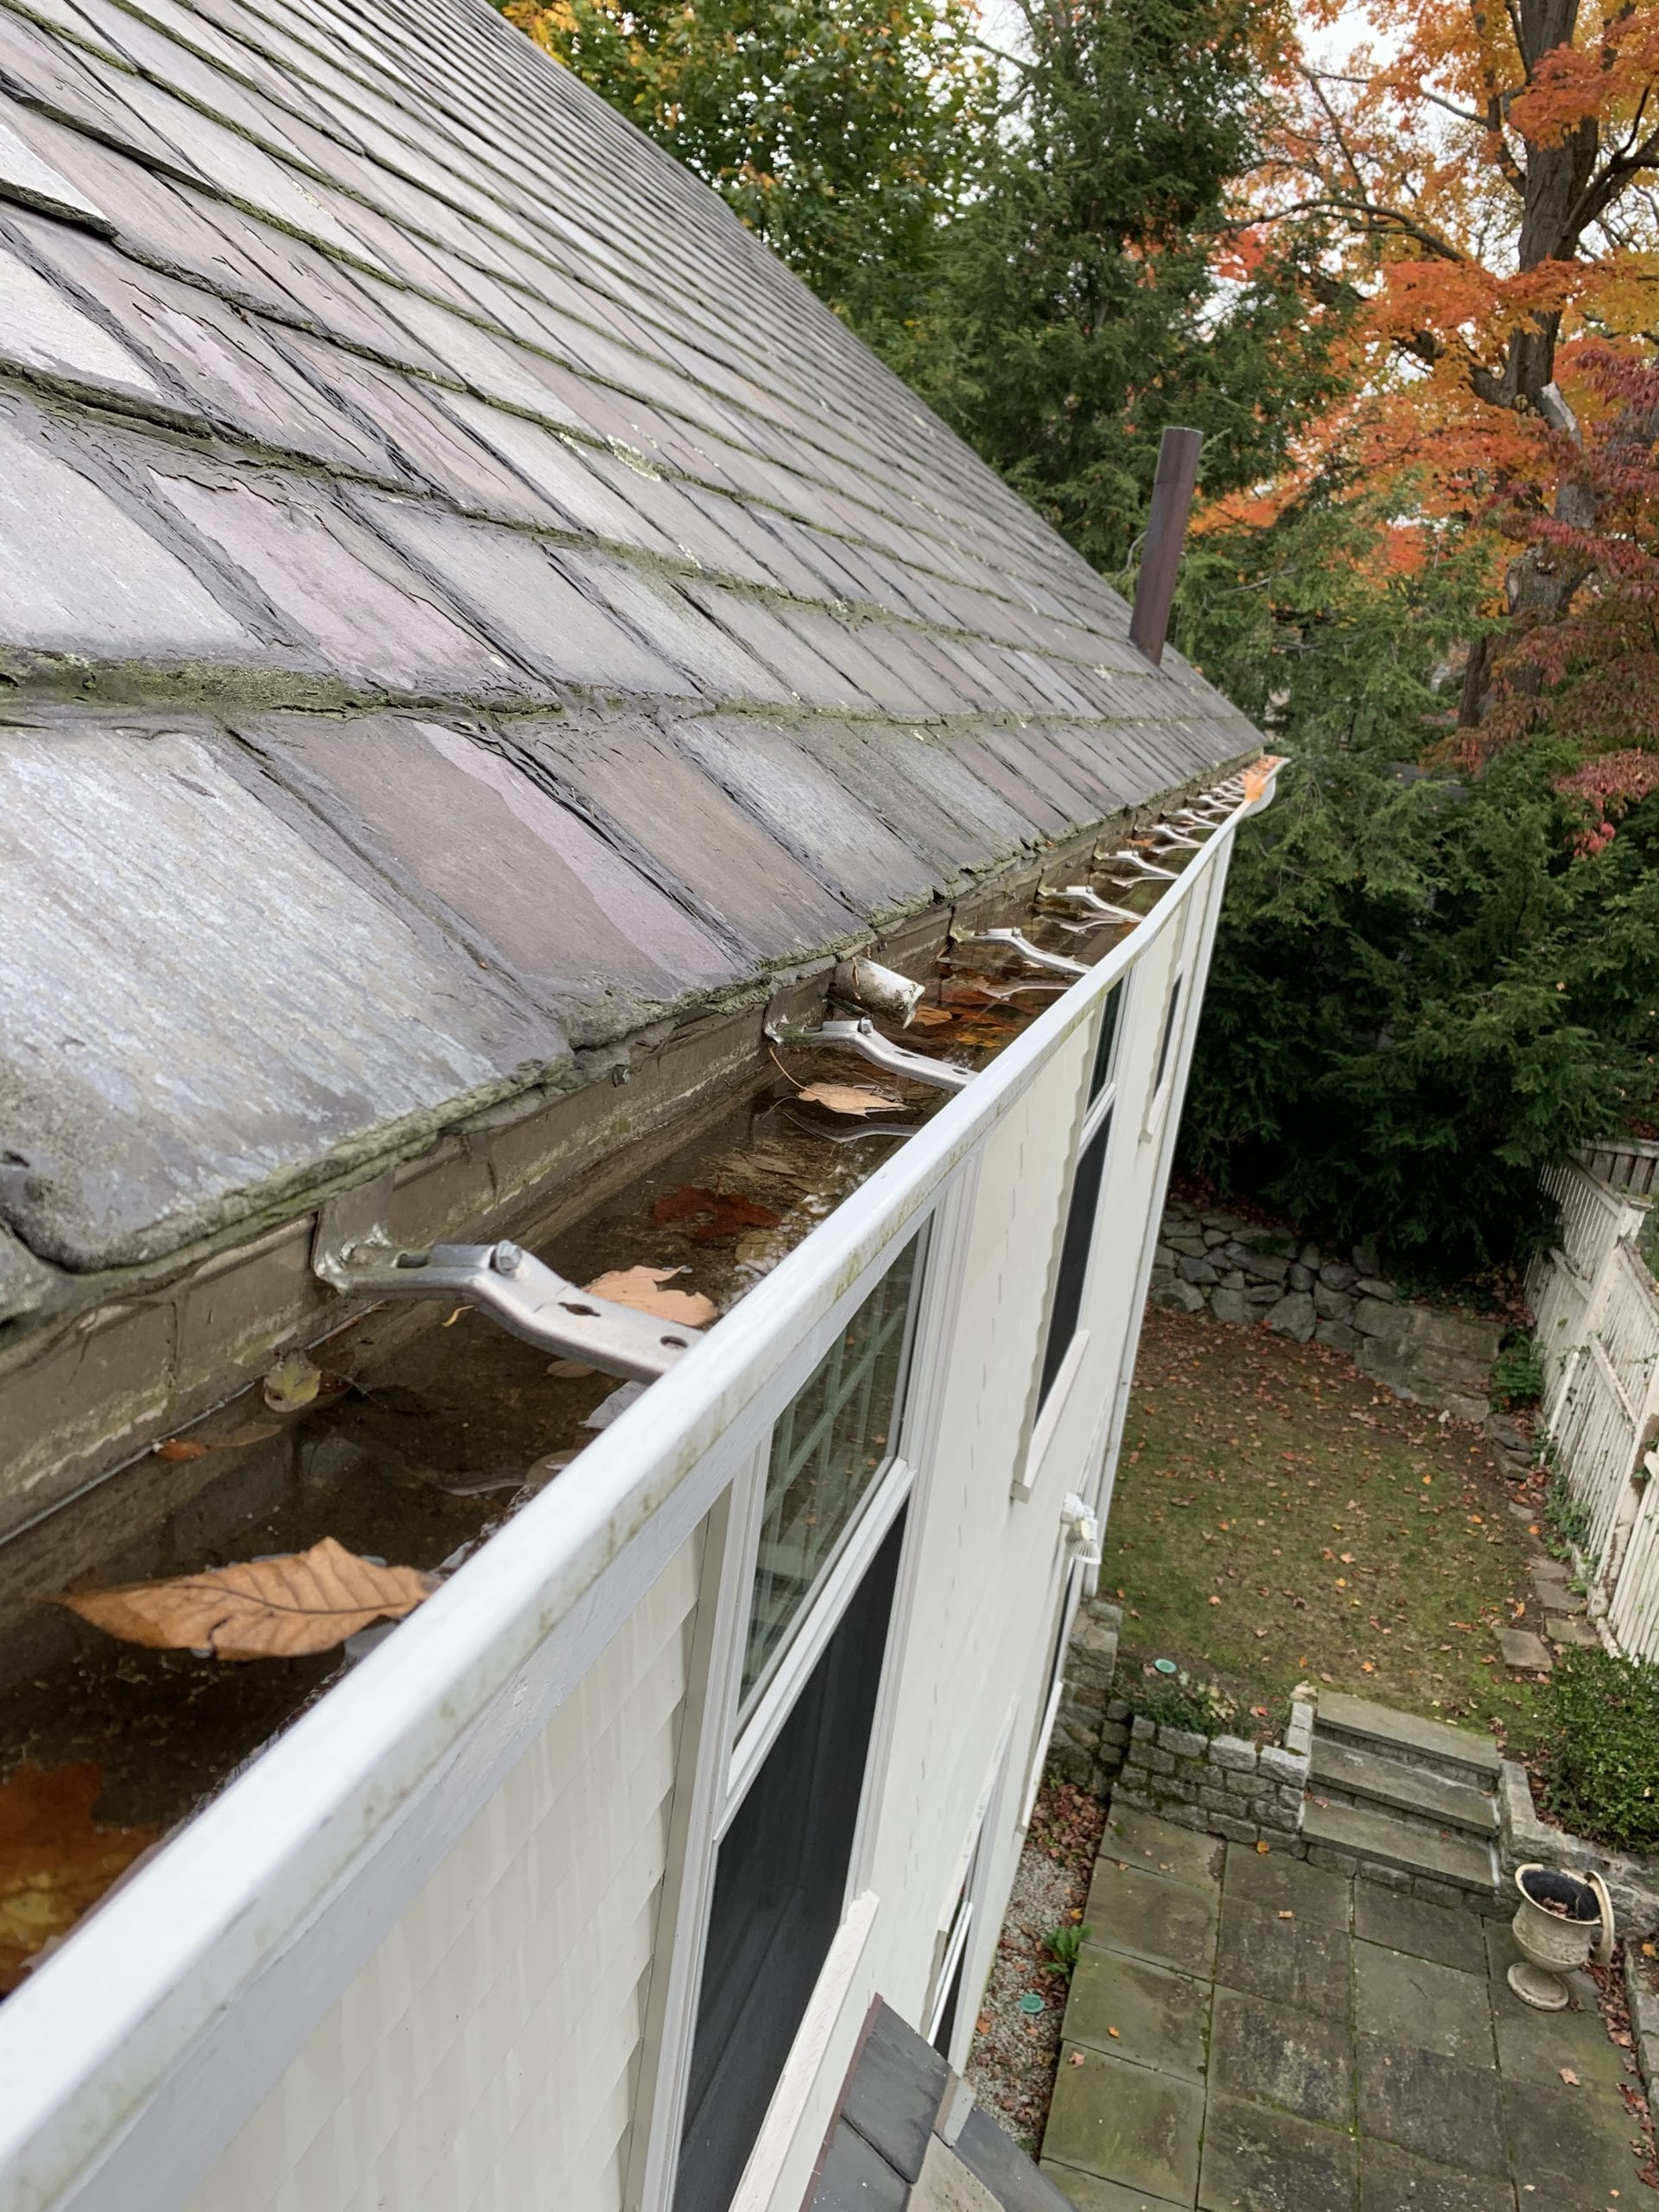 Flooded and leaves in old gutters.